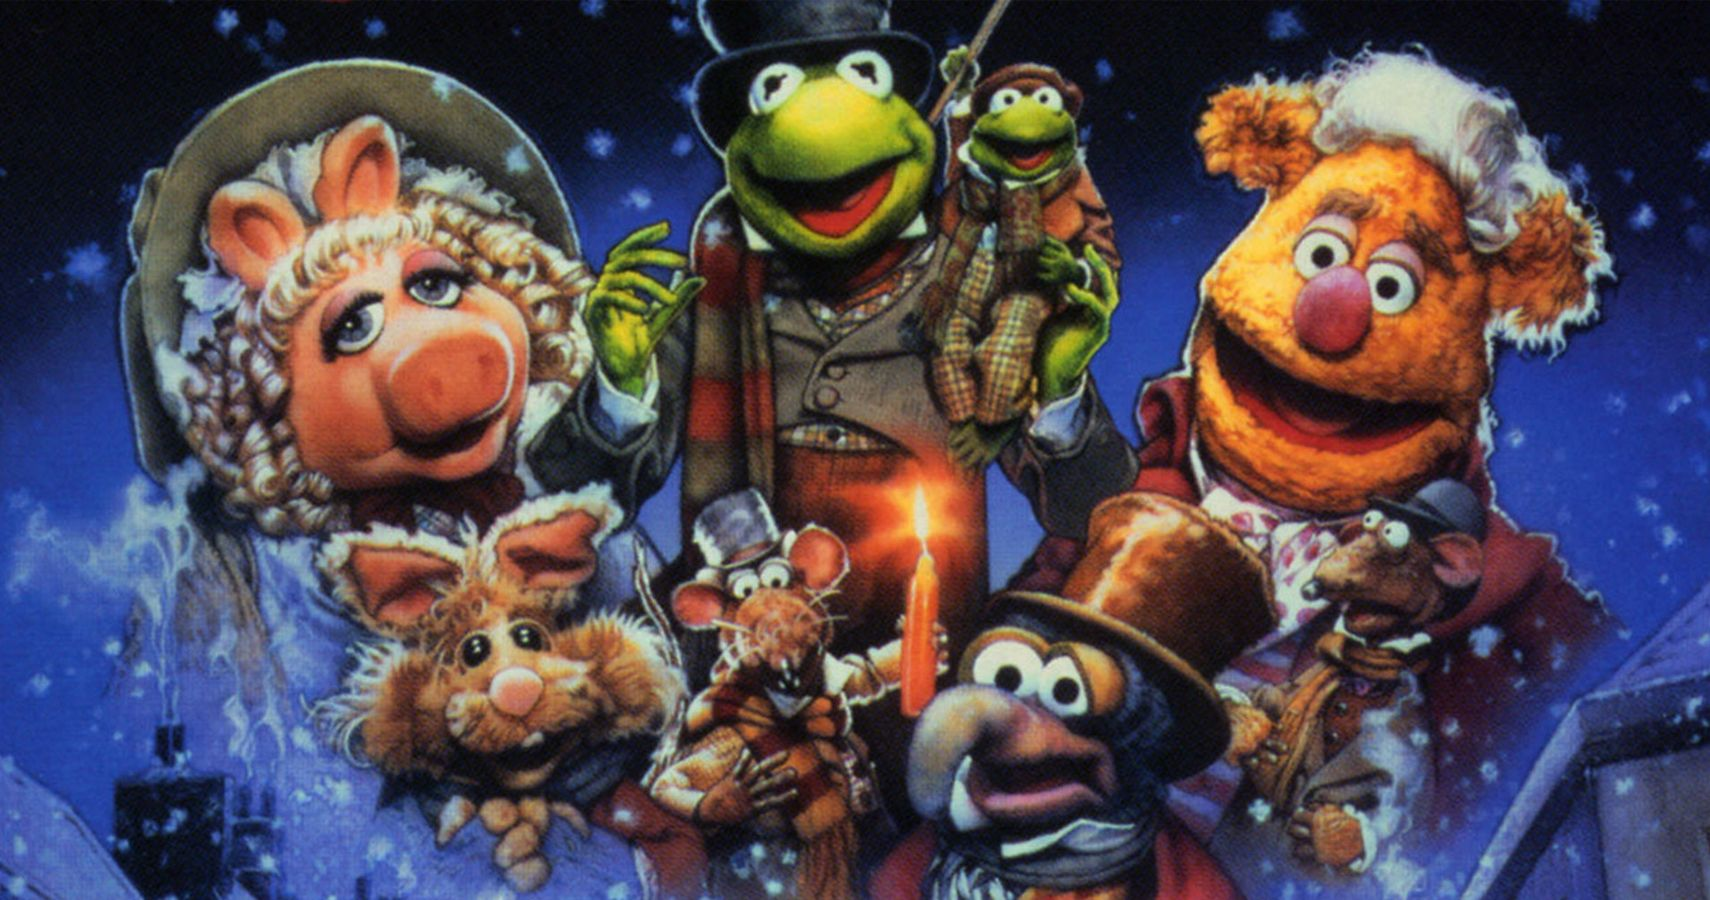 The 10 Sweetest Moments In The Muppet Christmas Carol